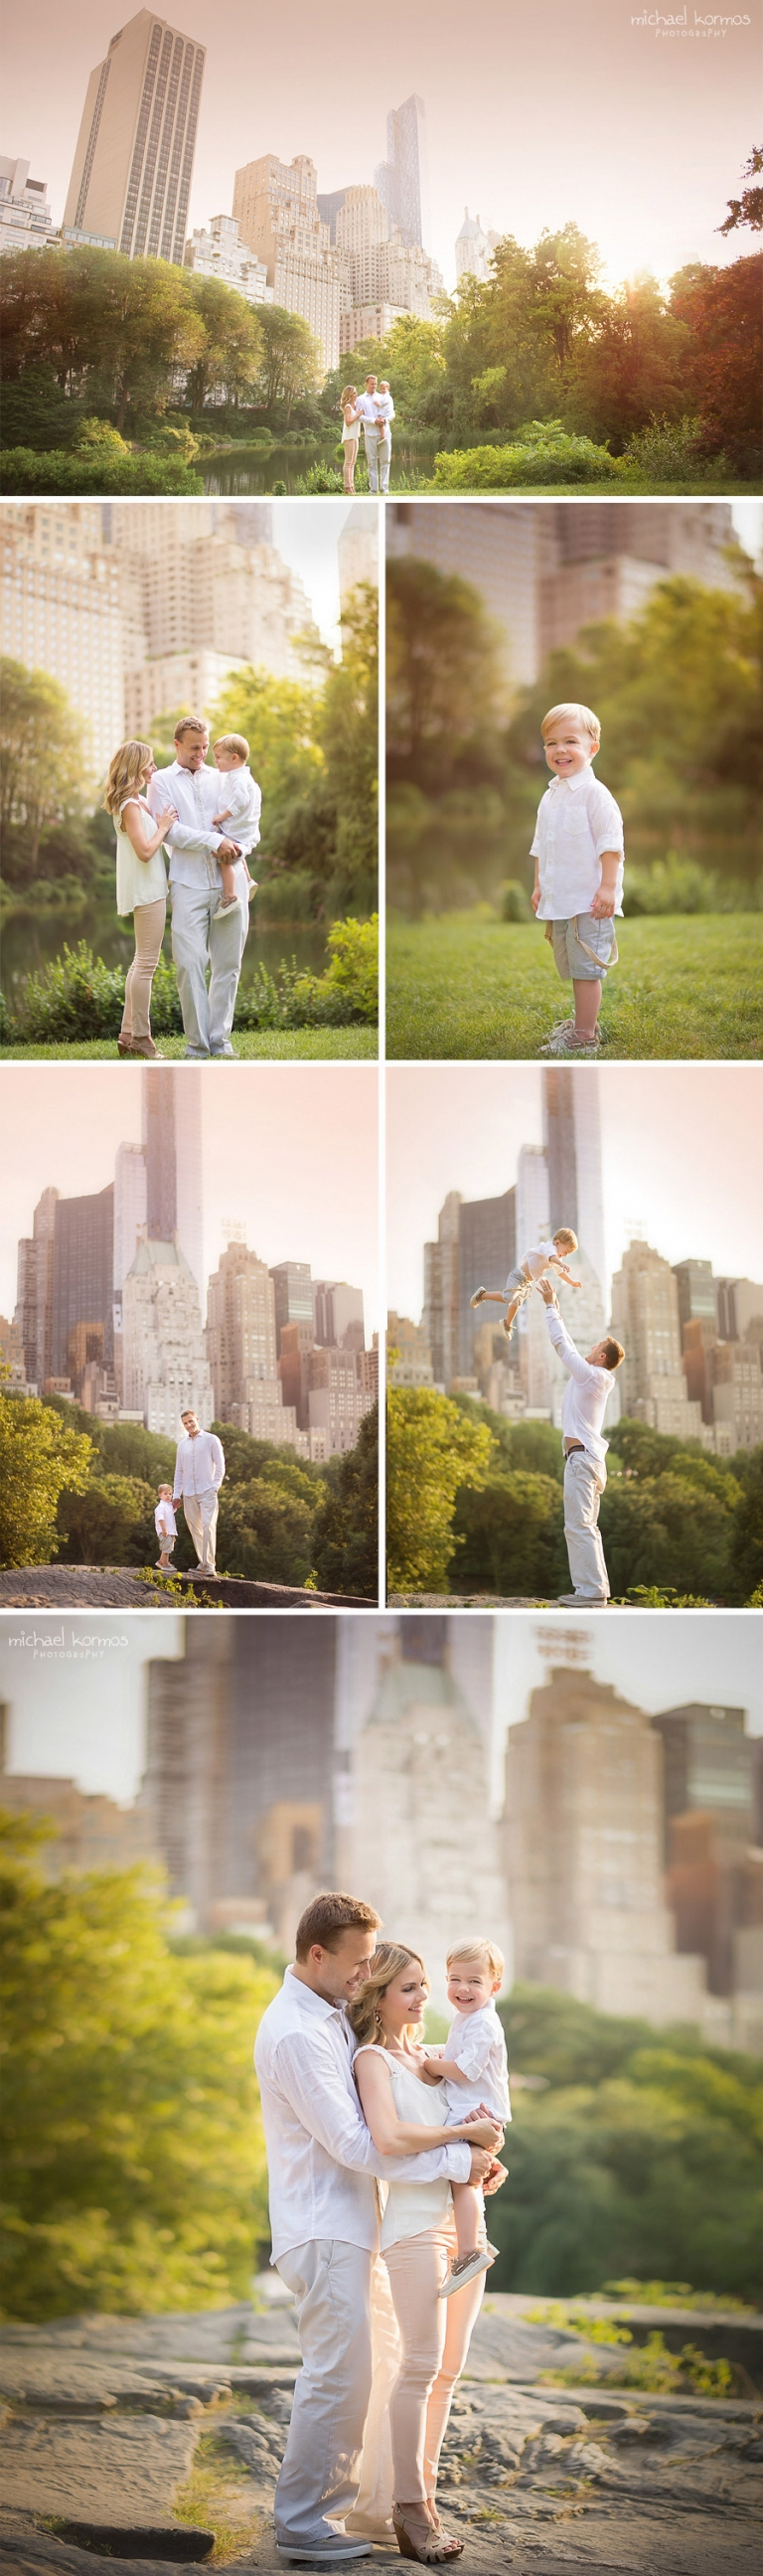 lifestyle baby photography captured in Central Park